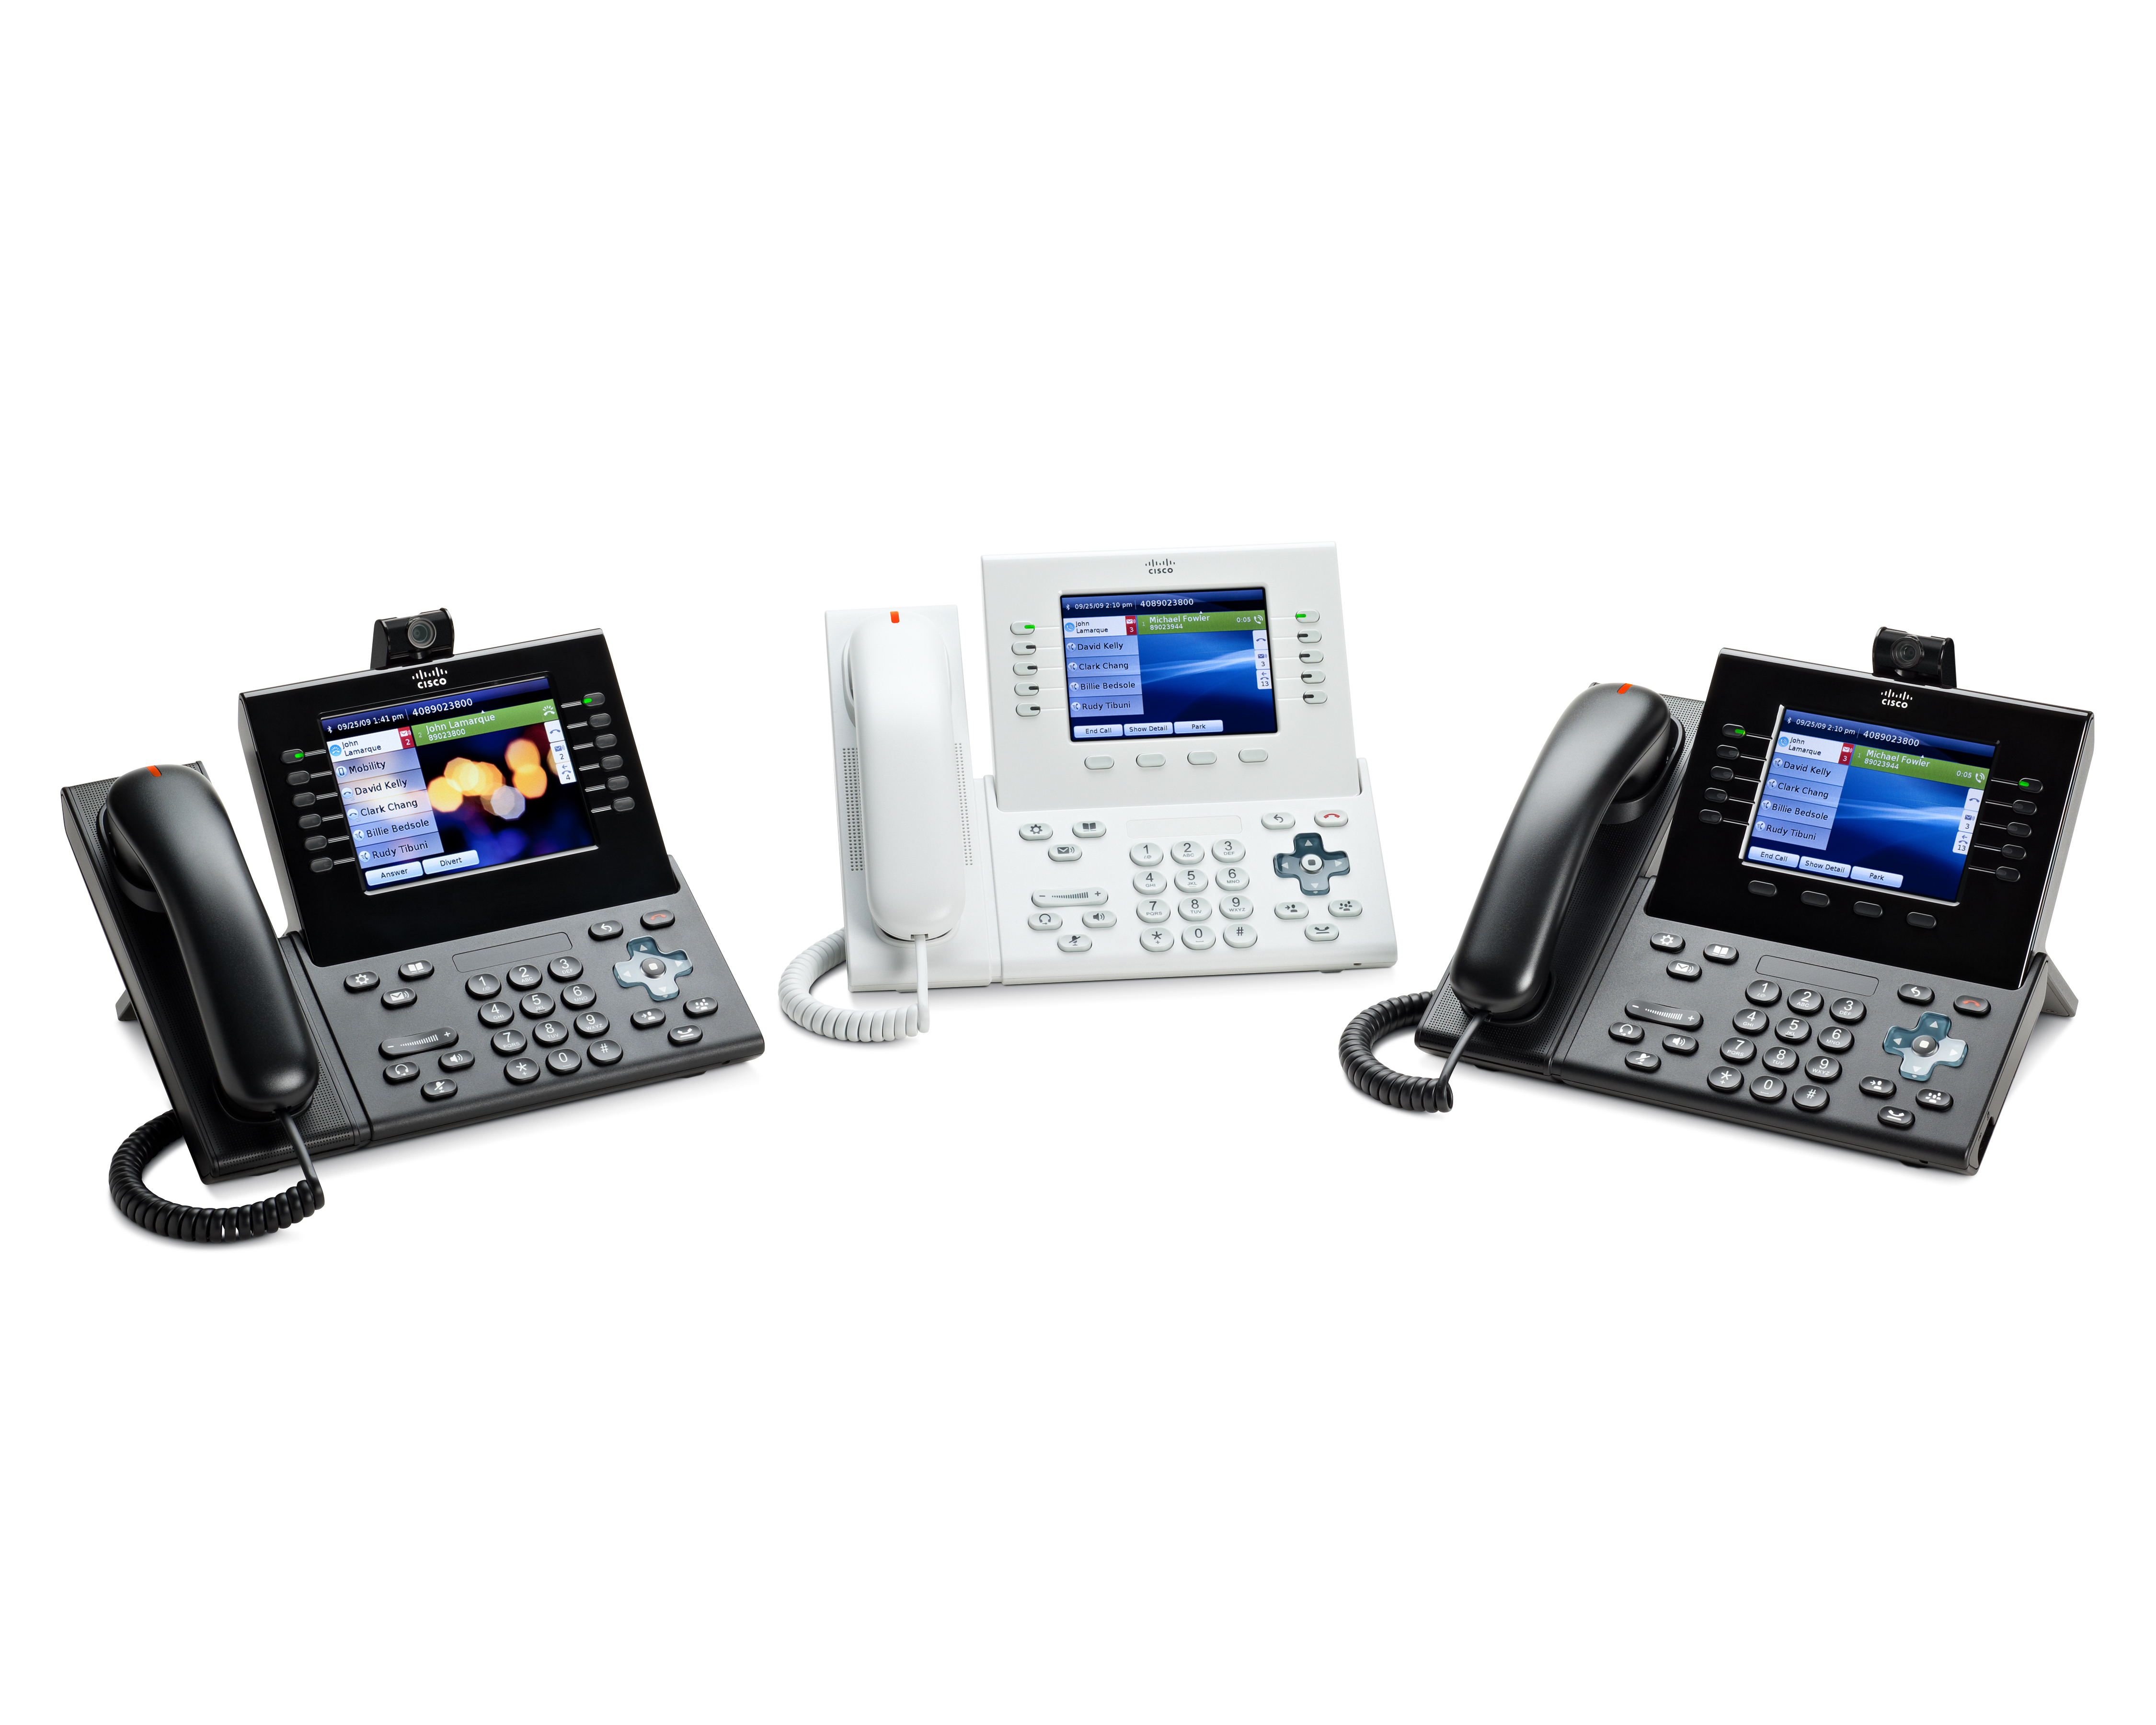 Cisco Unified IP Phone 9900 and 8900